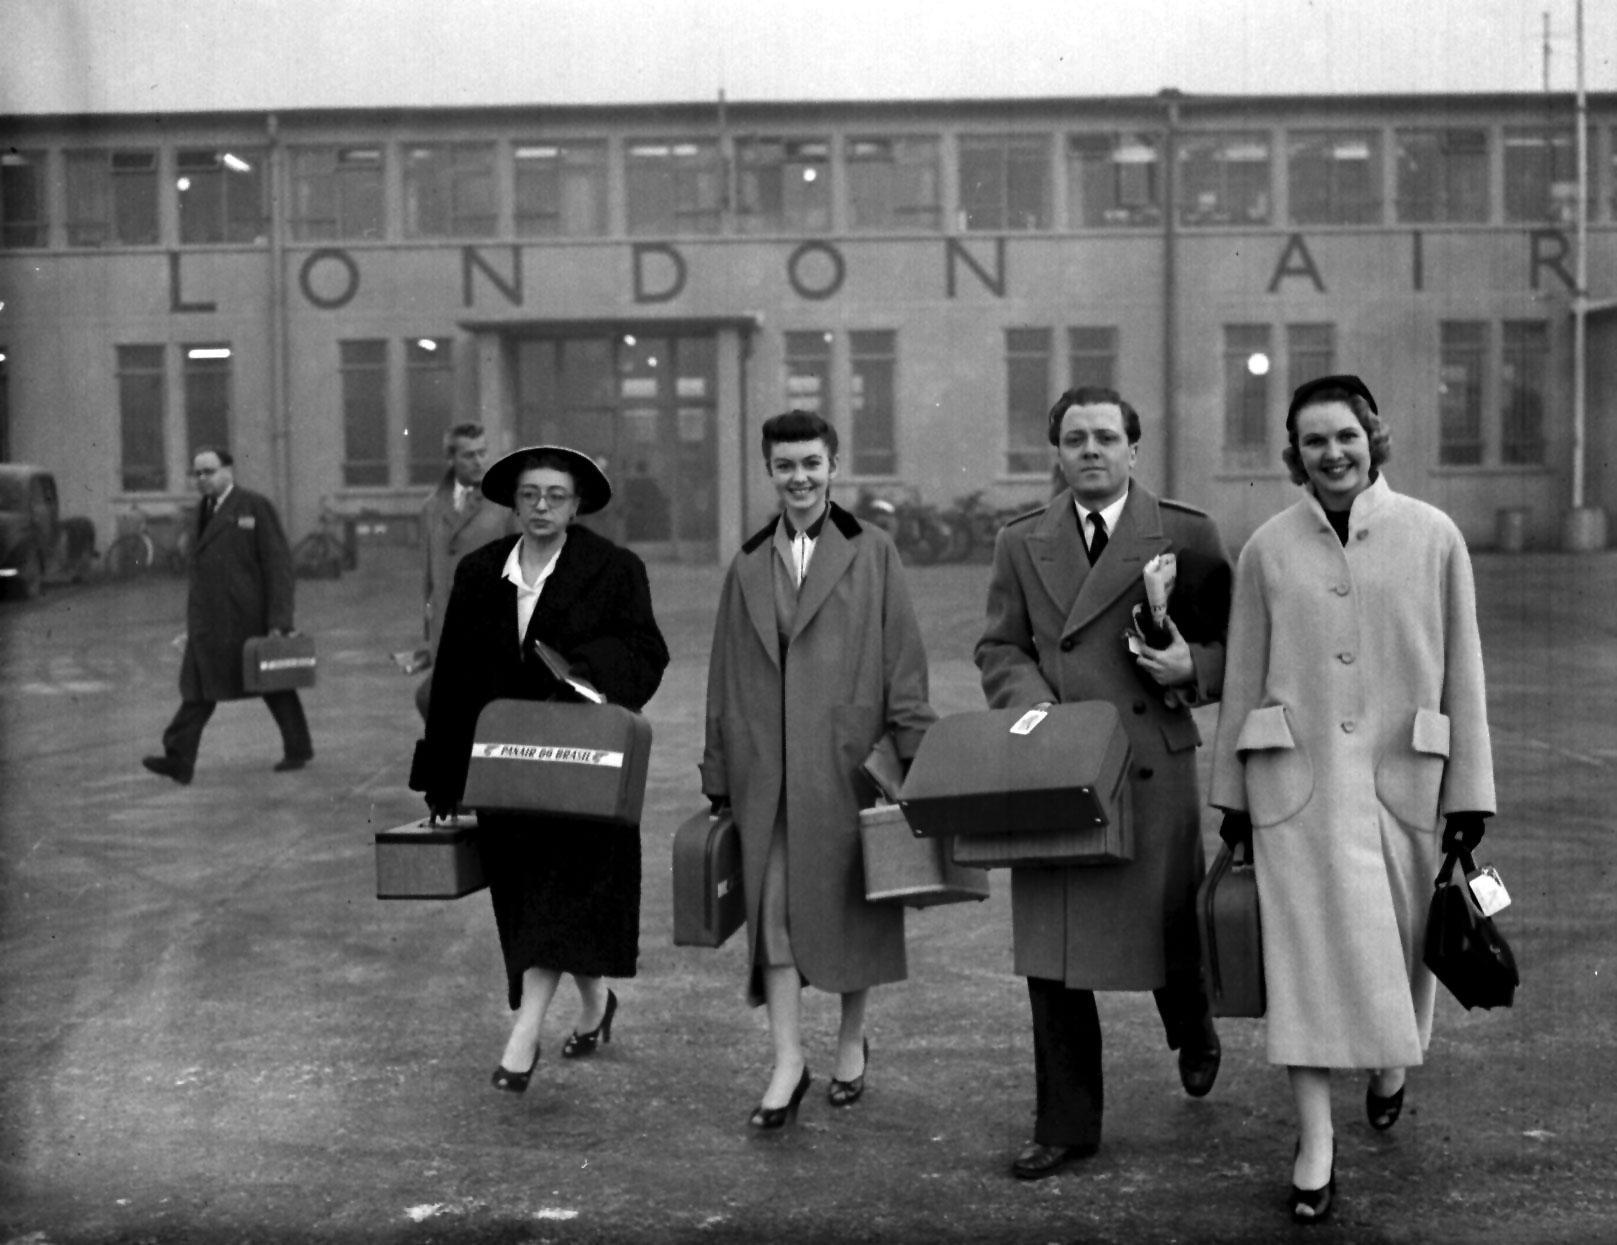 Thora Hird, Janette Scott, Richard Attenborough and Sheila Sim at London Airport (later Heathrow) ready to fly to the Uruguay Film Festival, 1955.